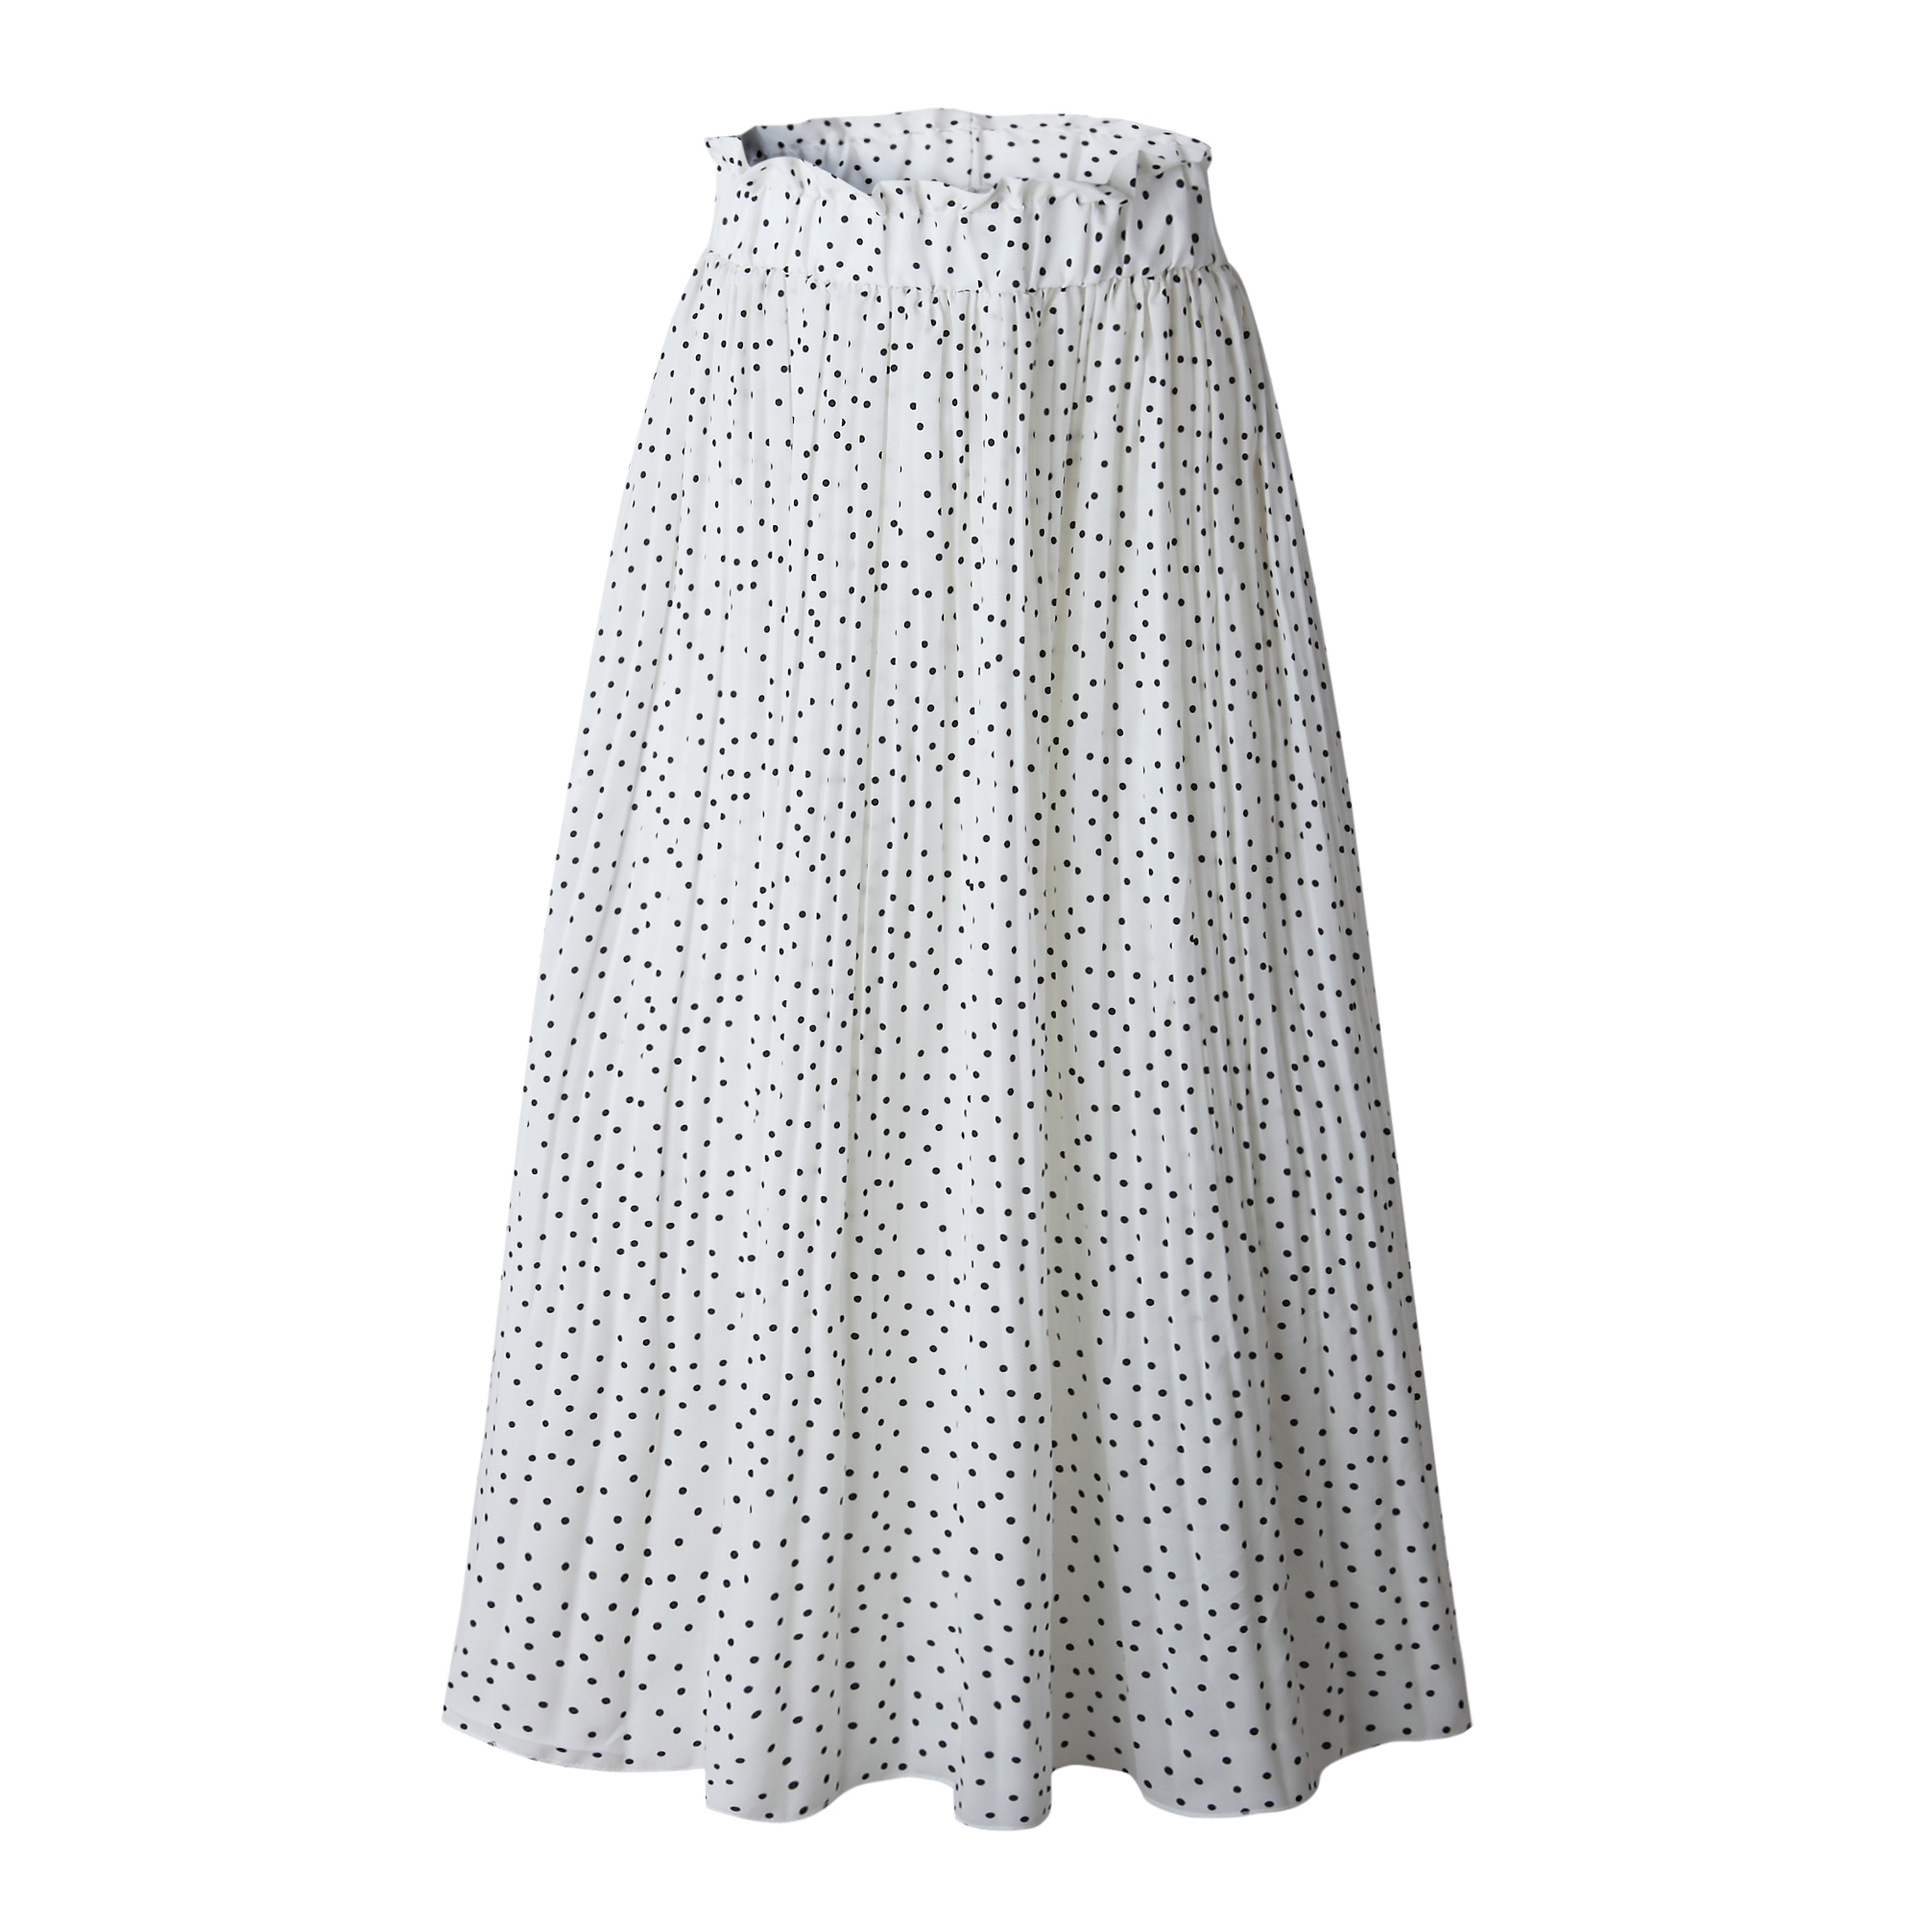 Hff3371f1b9d14ba190fbc086d1d2ba31a - Summer Casual Chiffon Print Pockets High Waist Pleated Maxi Skirt Womens Long Skirts For Women